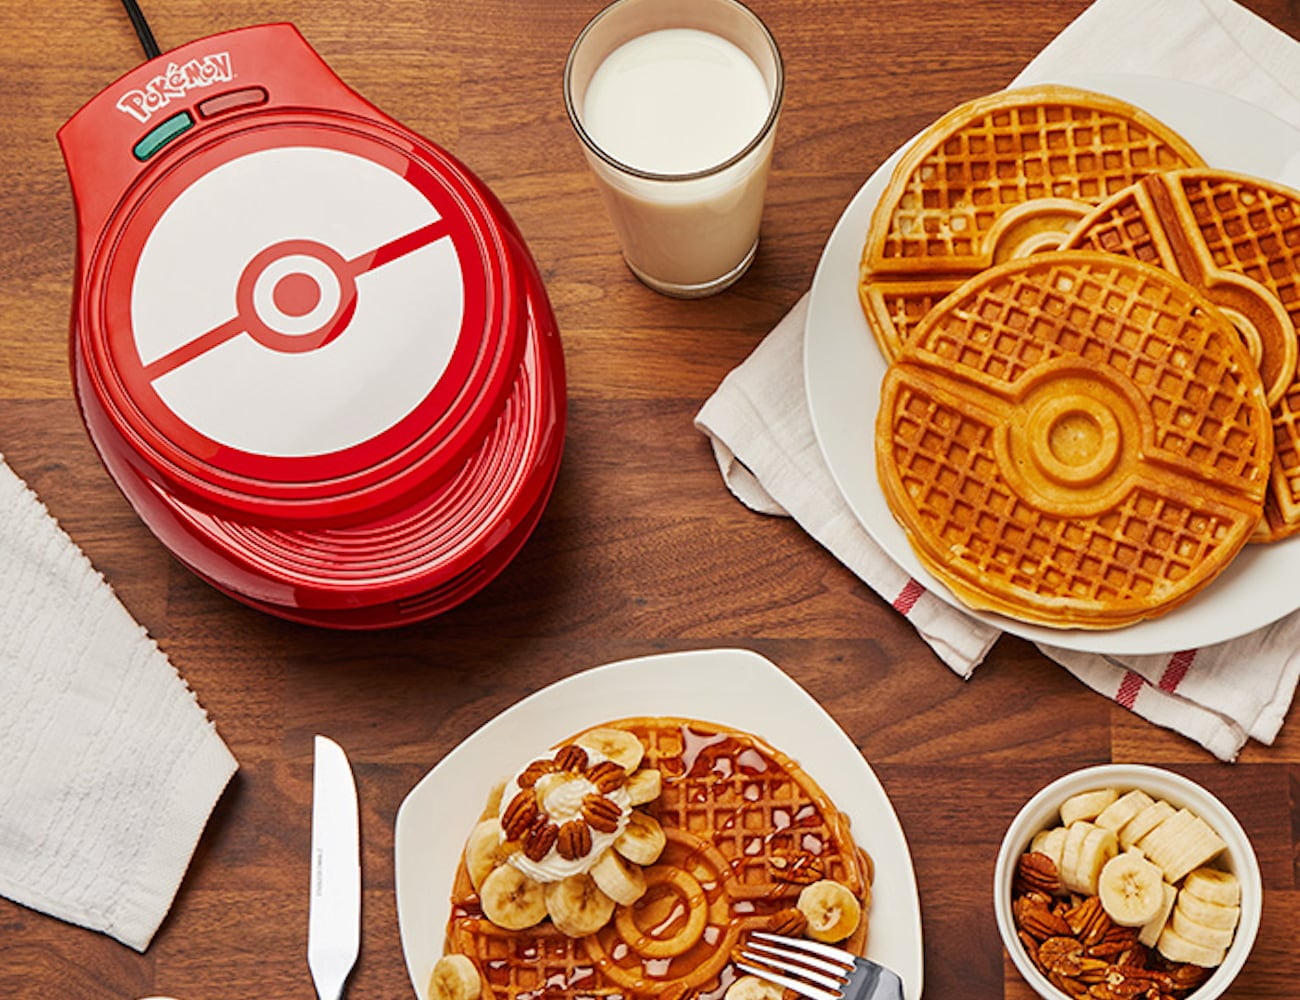 ThinkGeek Pokemon Poke Ball Waffle Maker